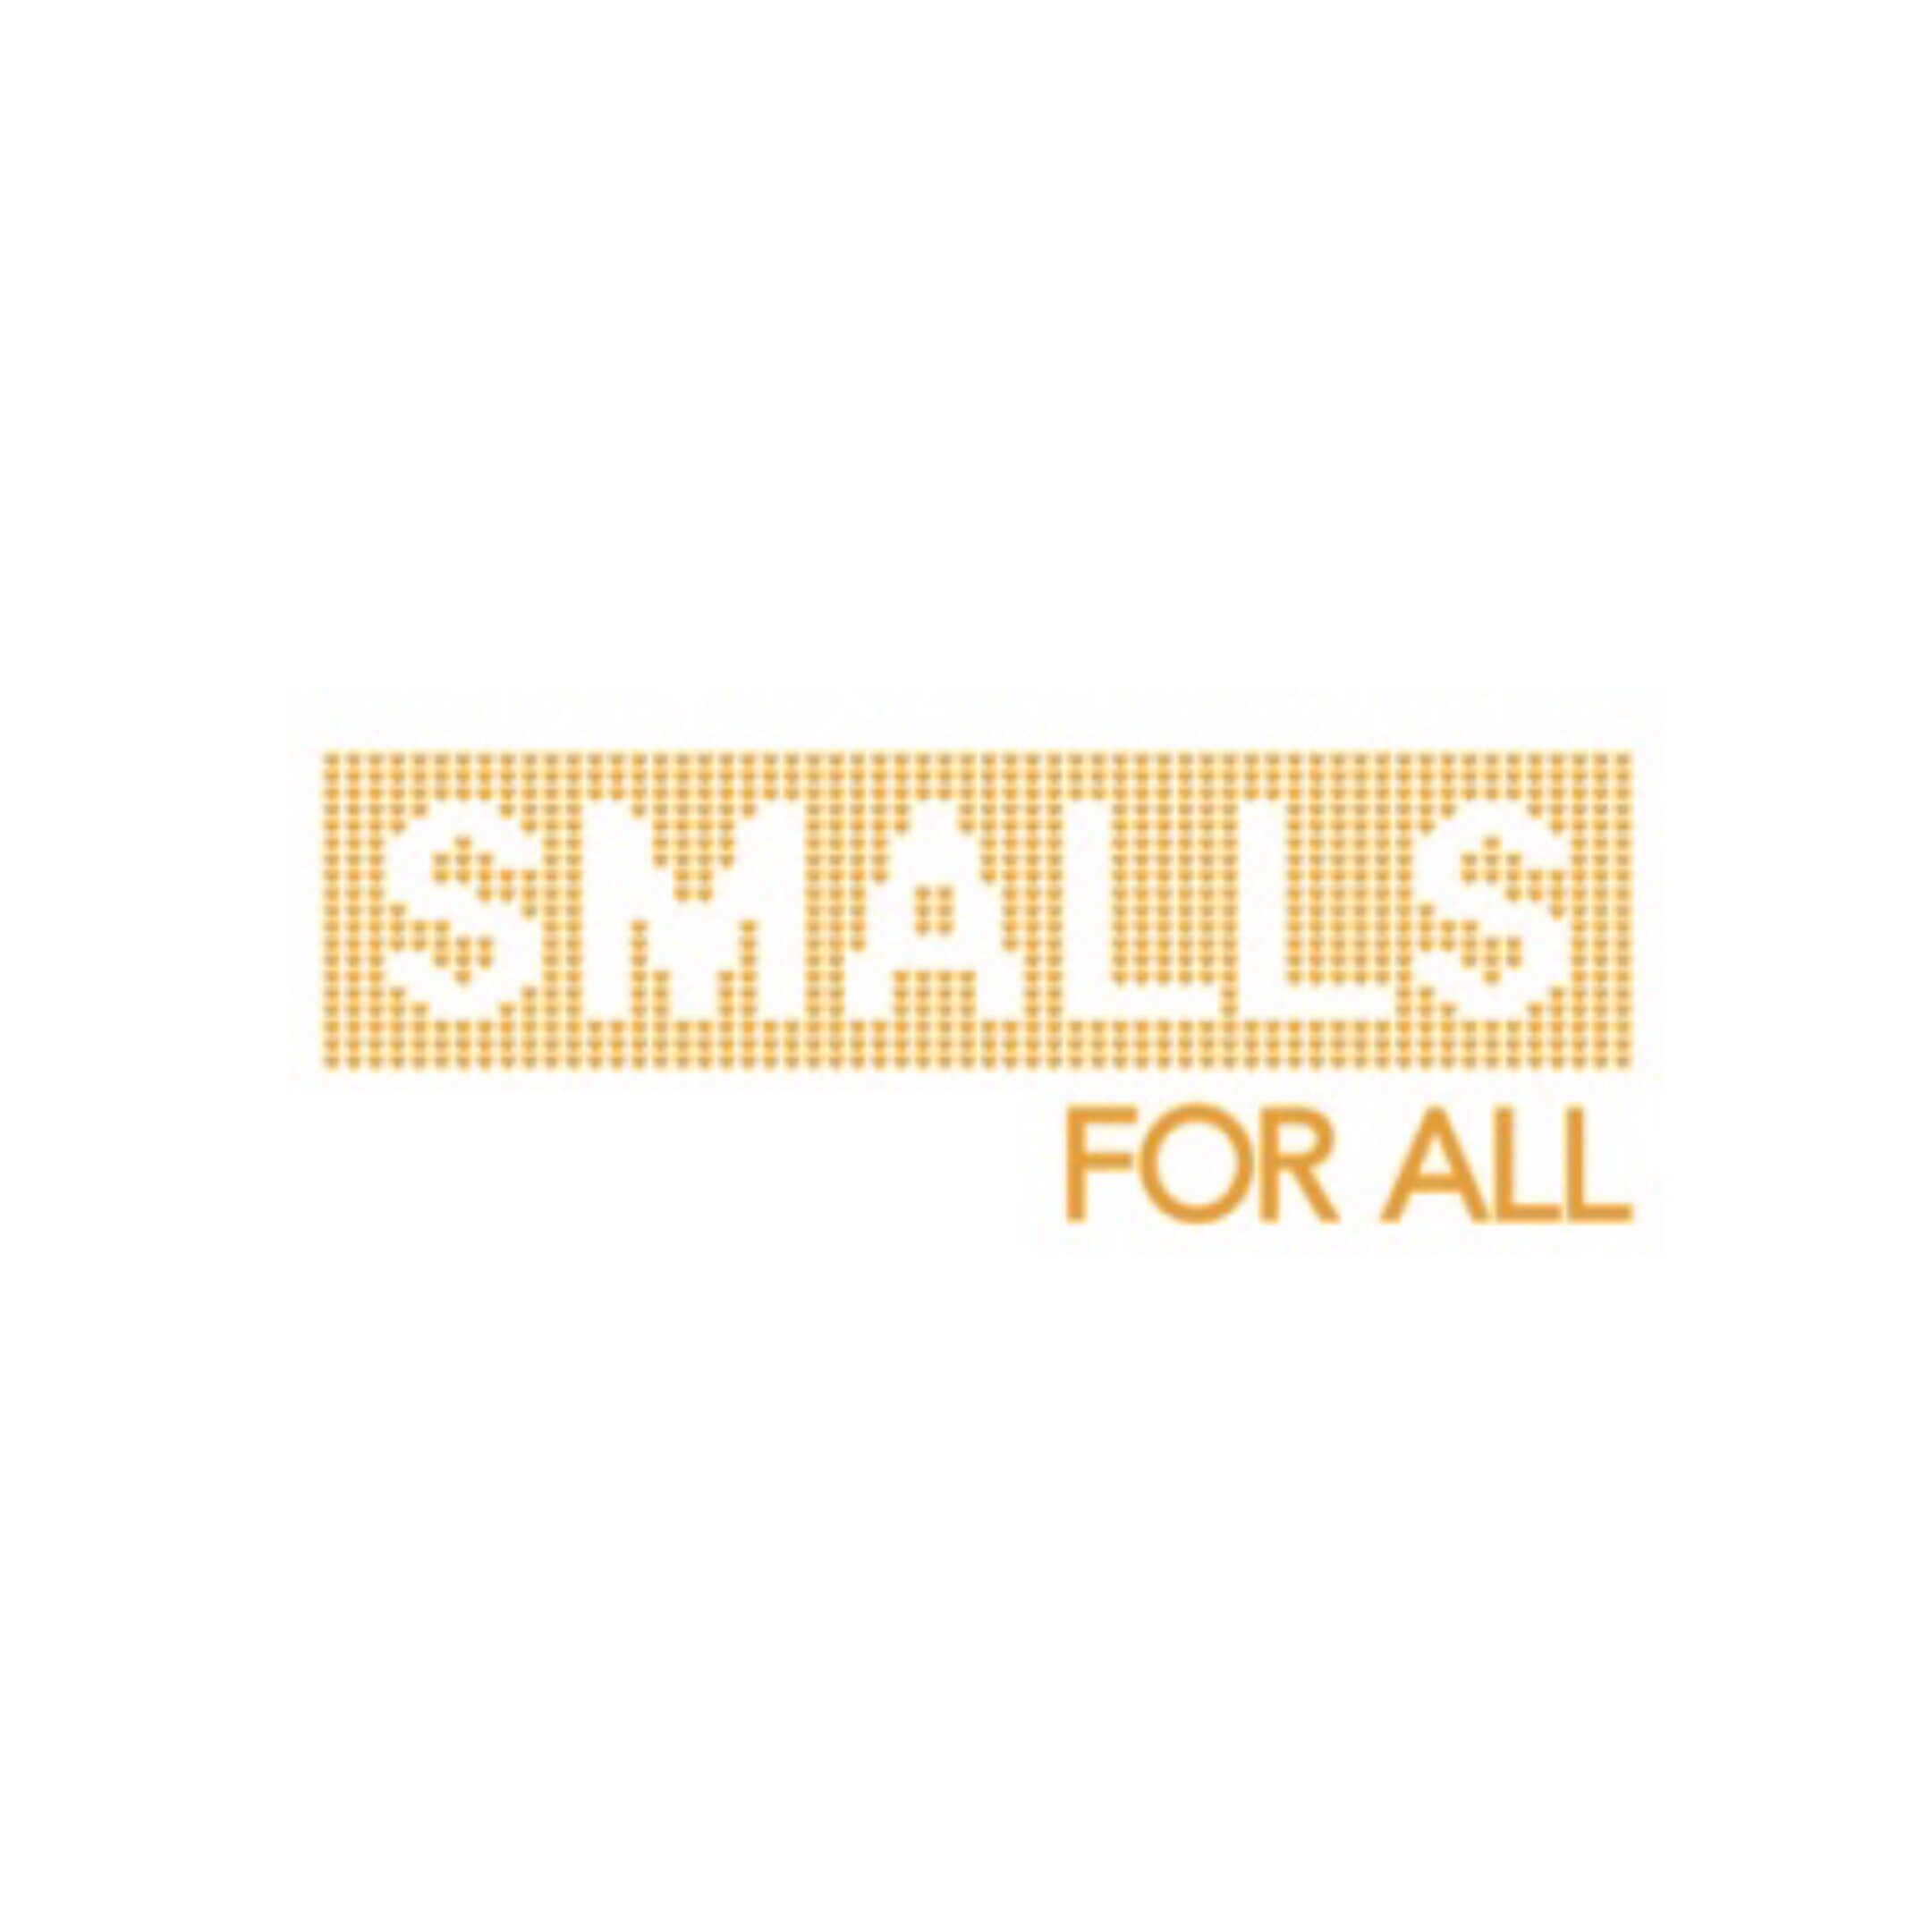 SMALLS FOR ALL